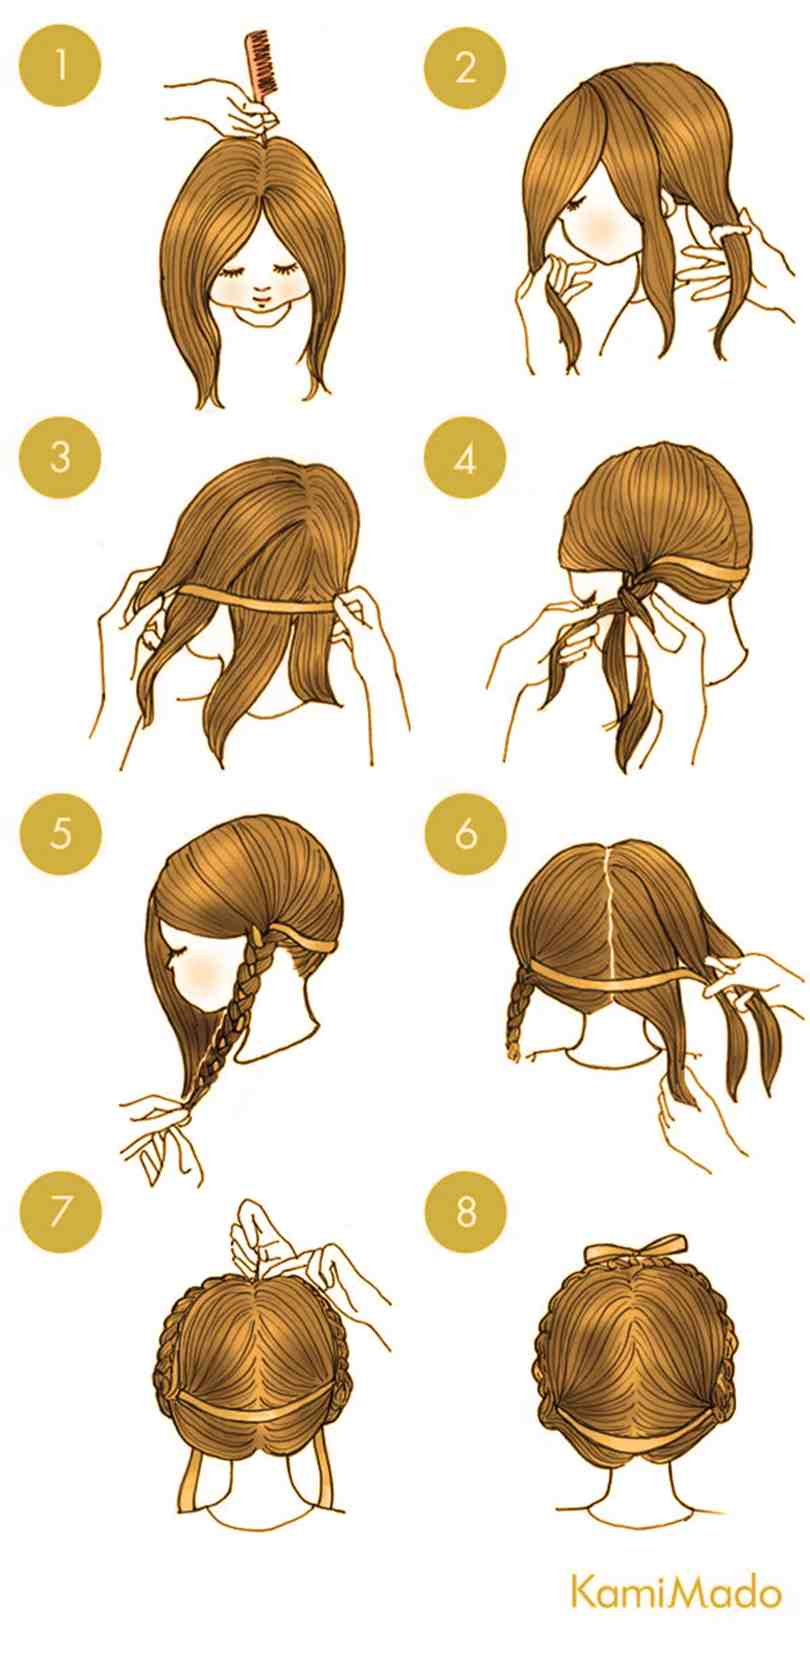 10 Quick Cute Hairstyles That Take Only 2 Minutes Of Your Time 10